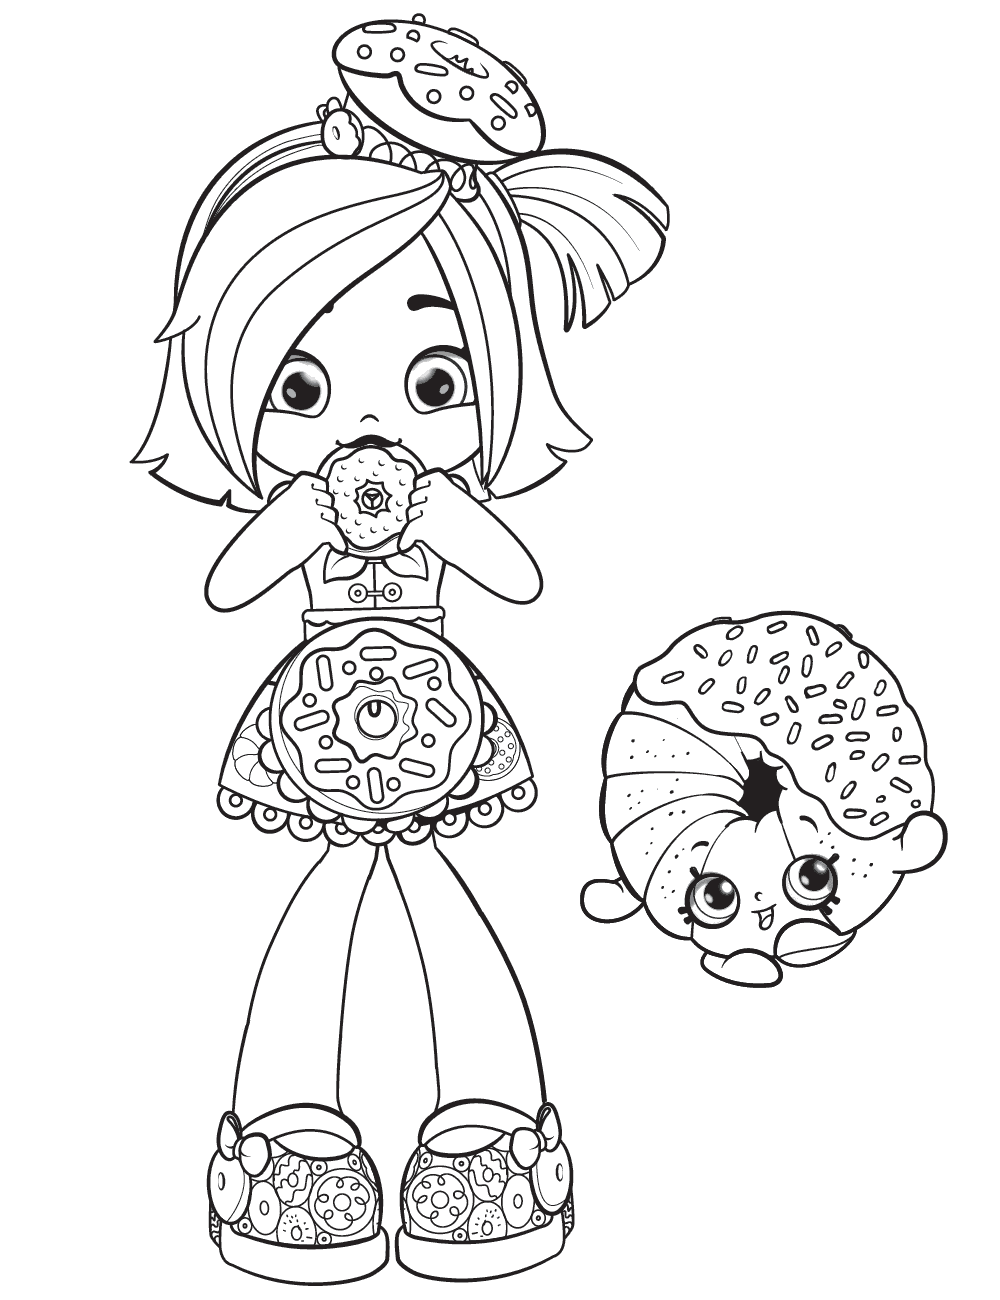 Shoppies Coloring Pages Shopkins Shopkin Colouring